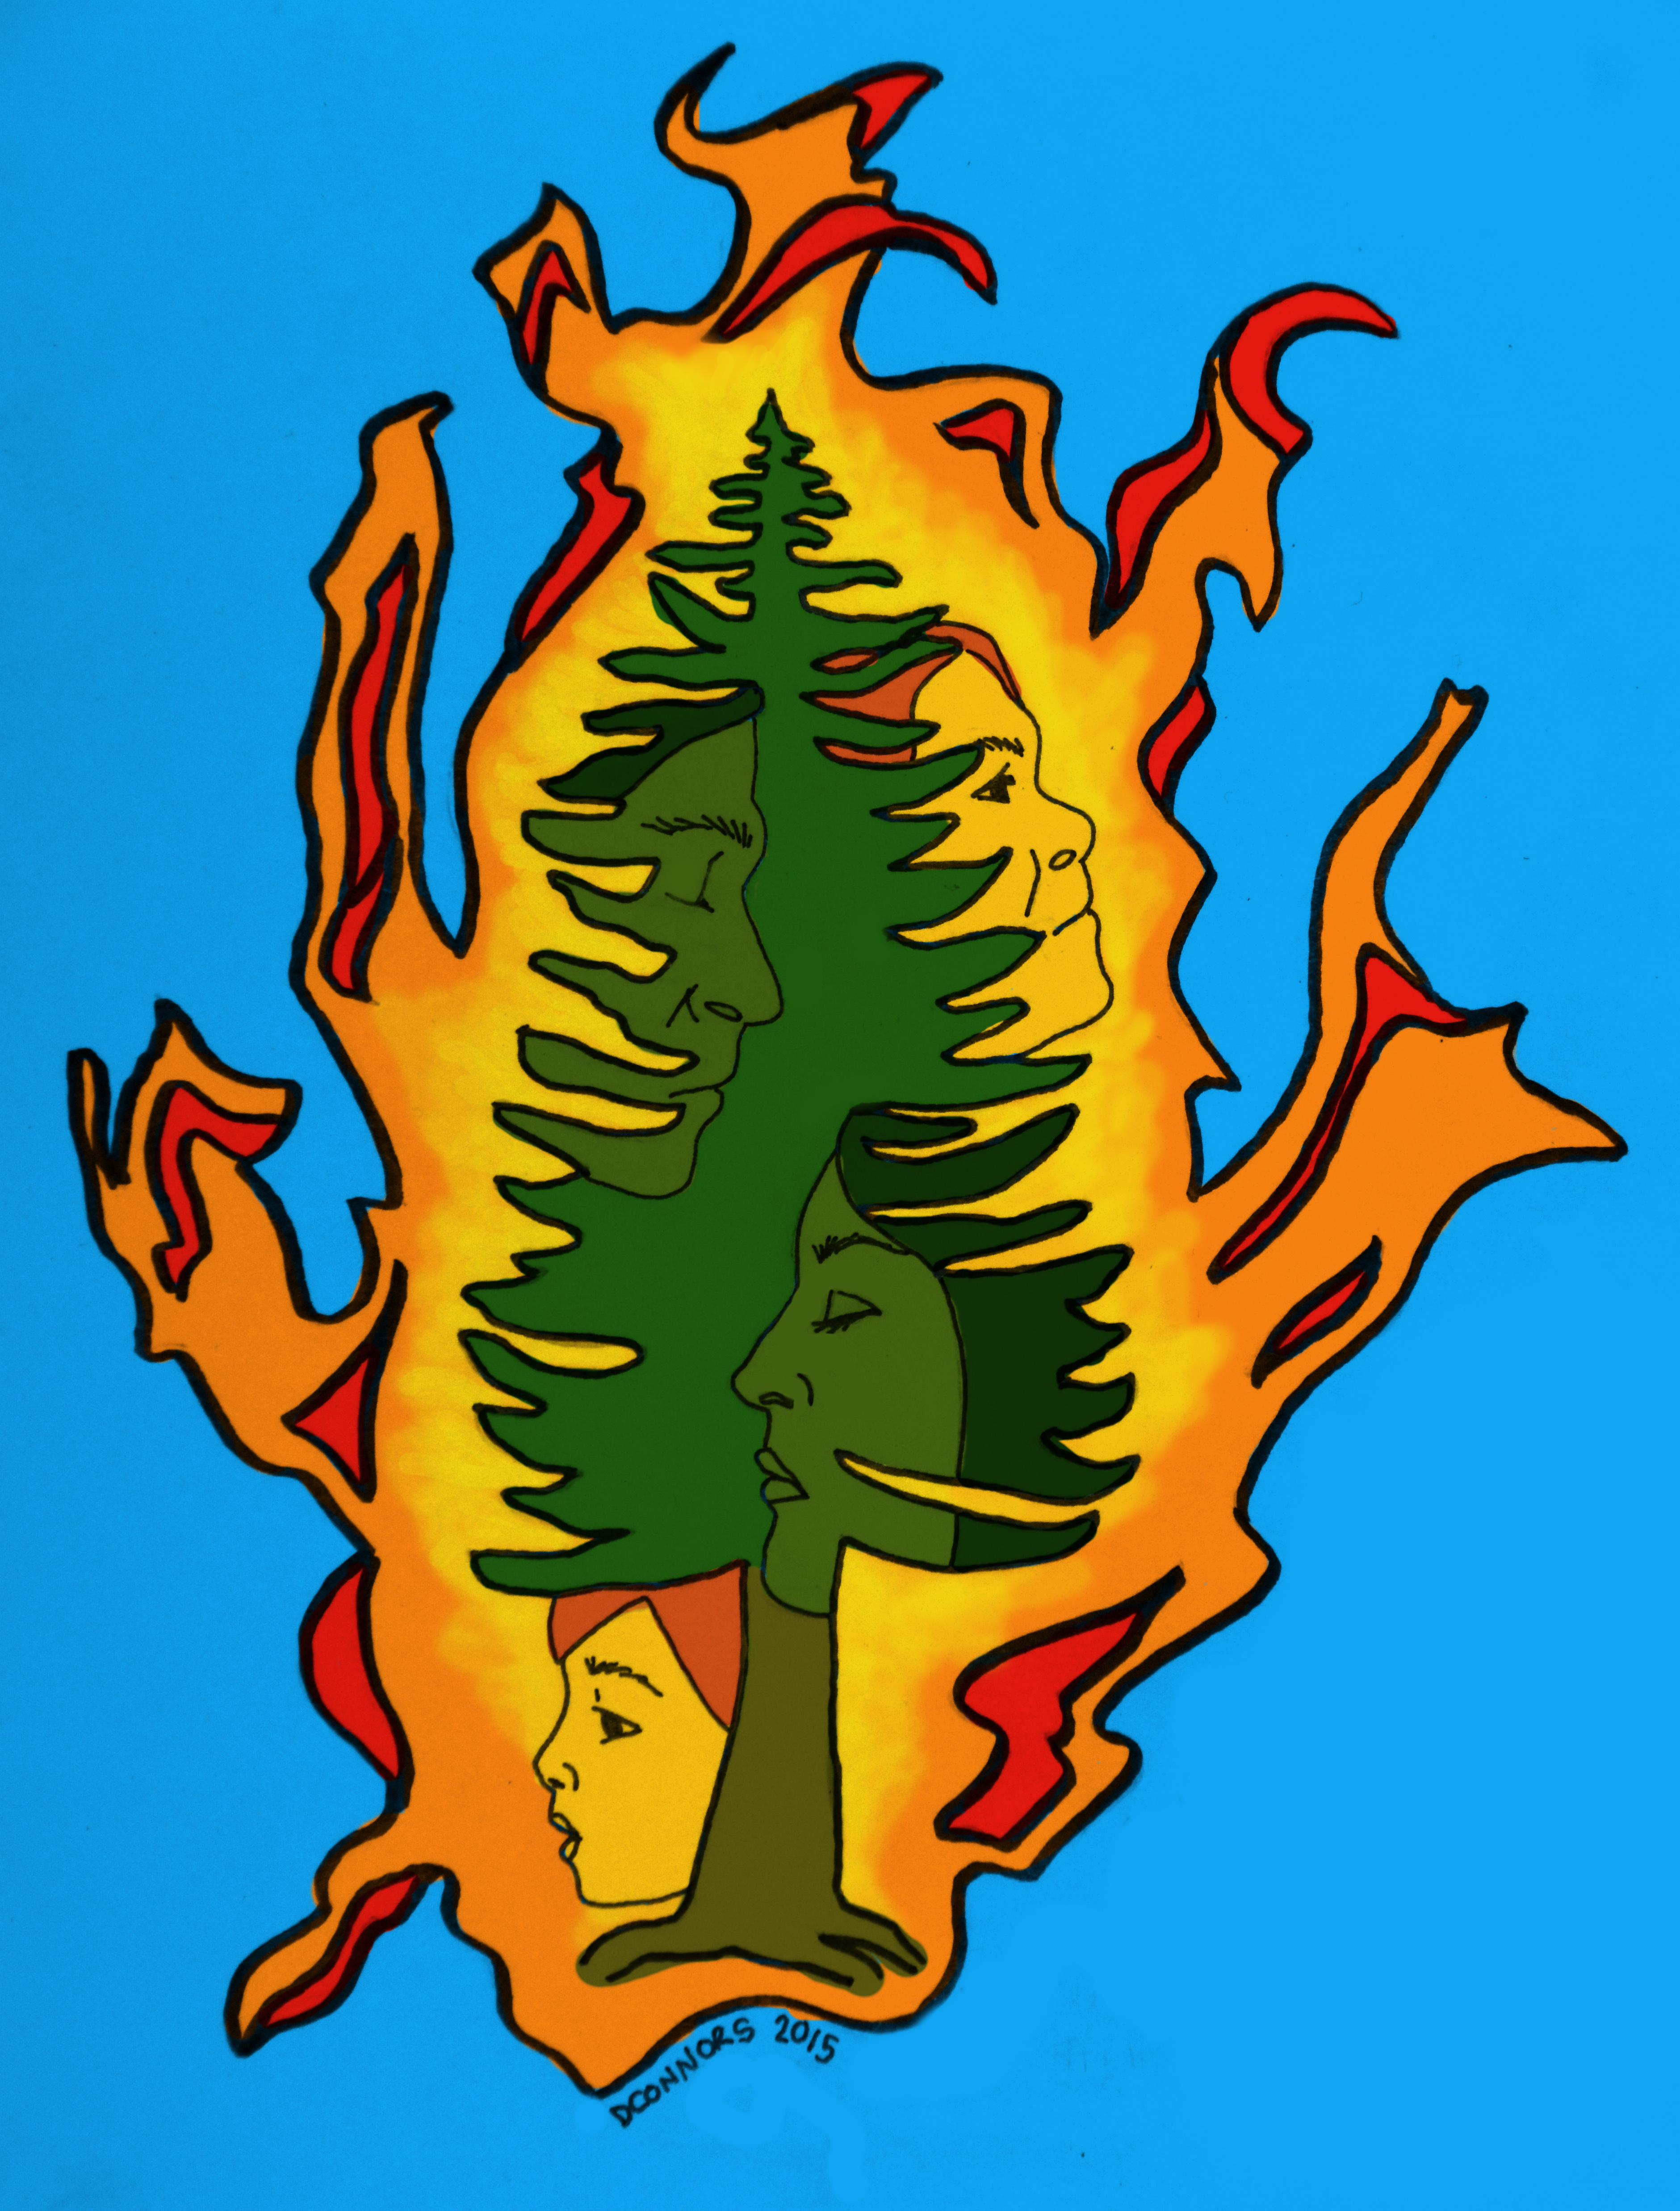 Trees_on_Fire_no_text.jpg